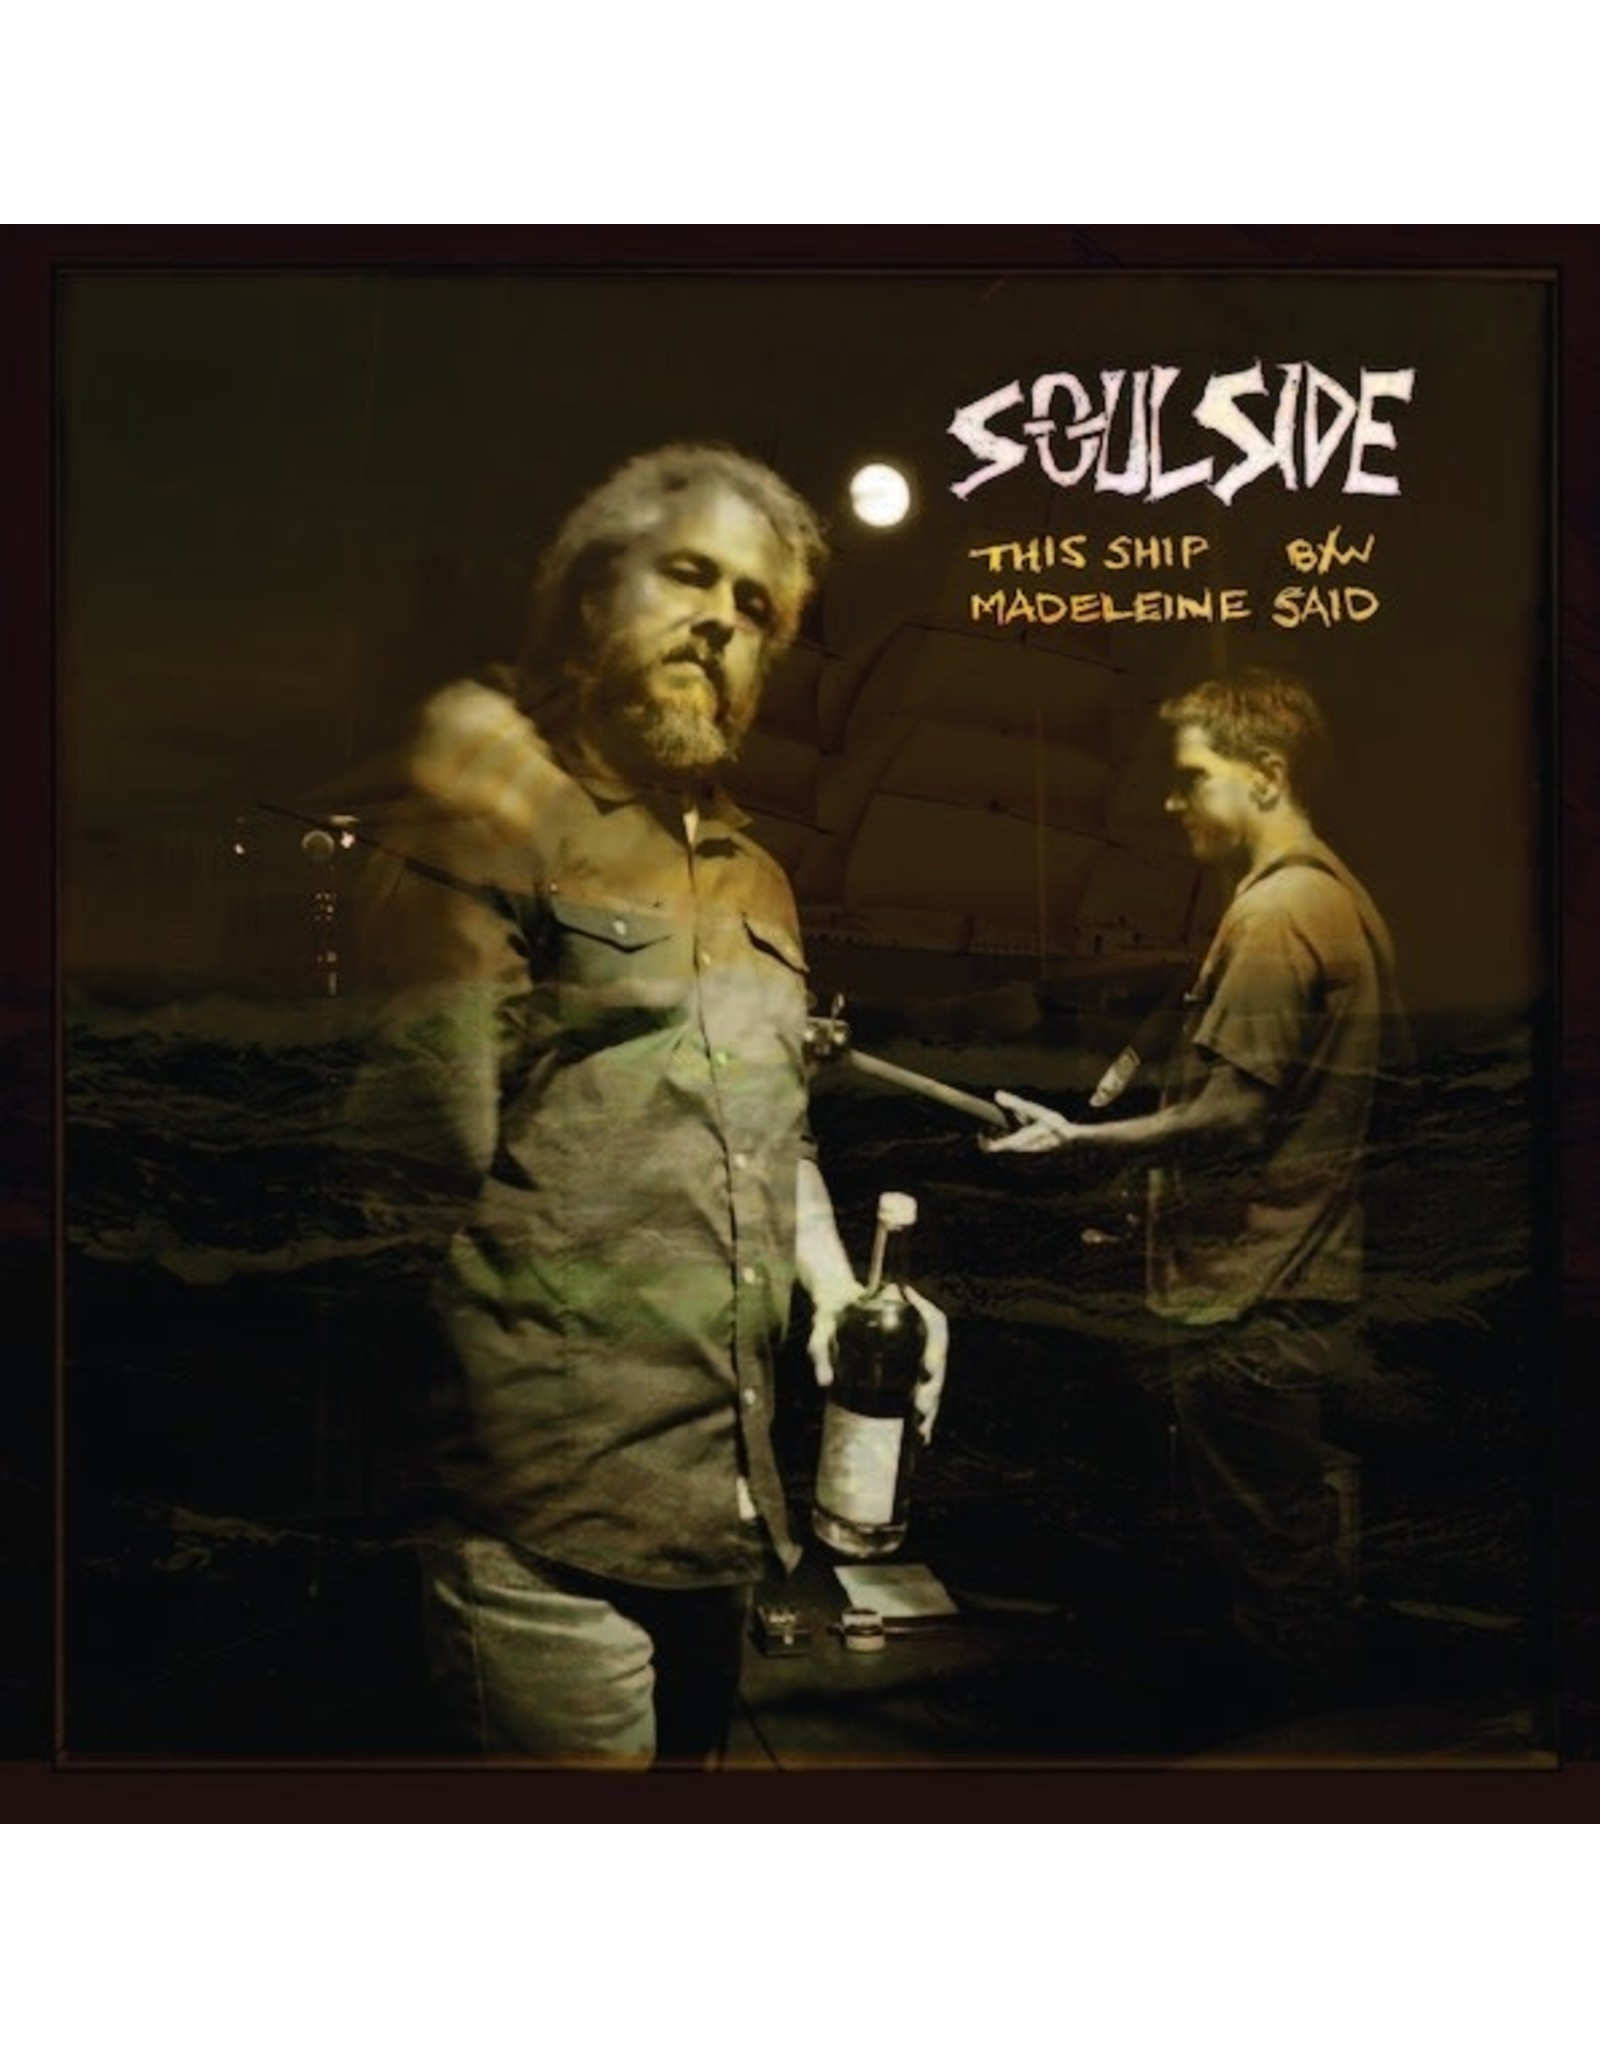 New Vinyl Soulside - This Ship b/w Madeleine Said 7""